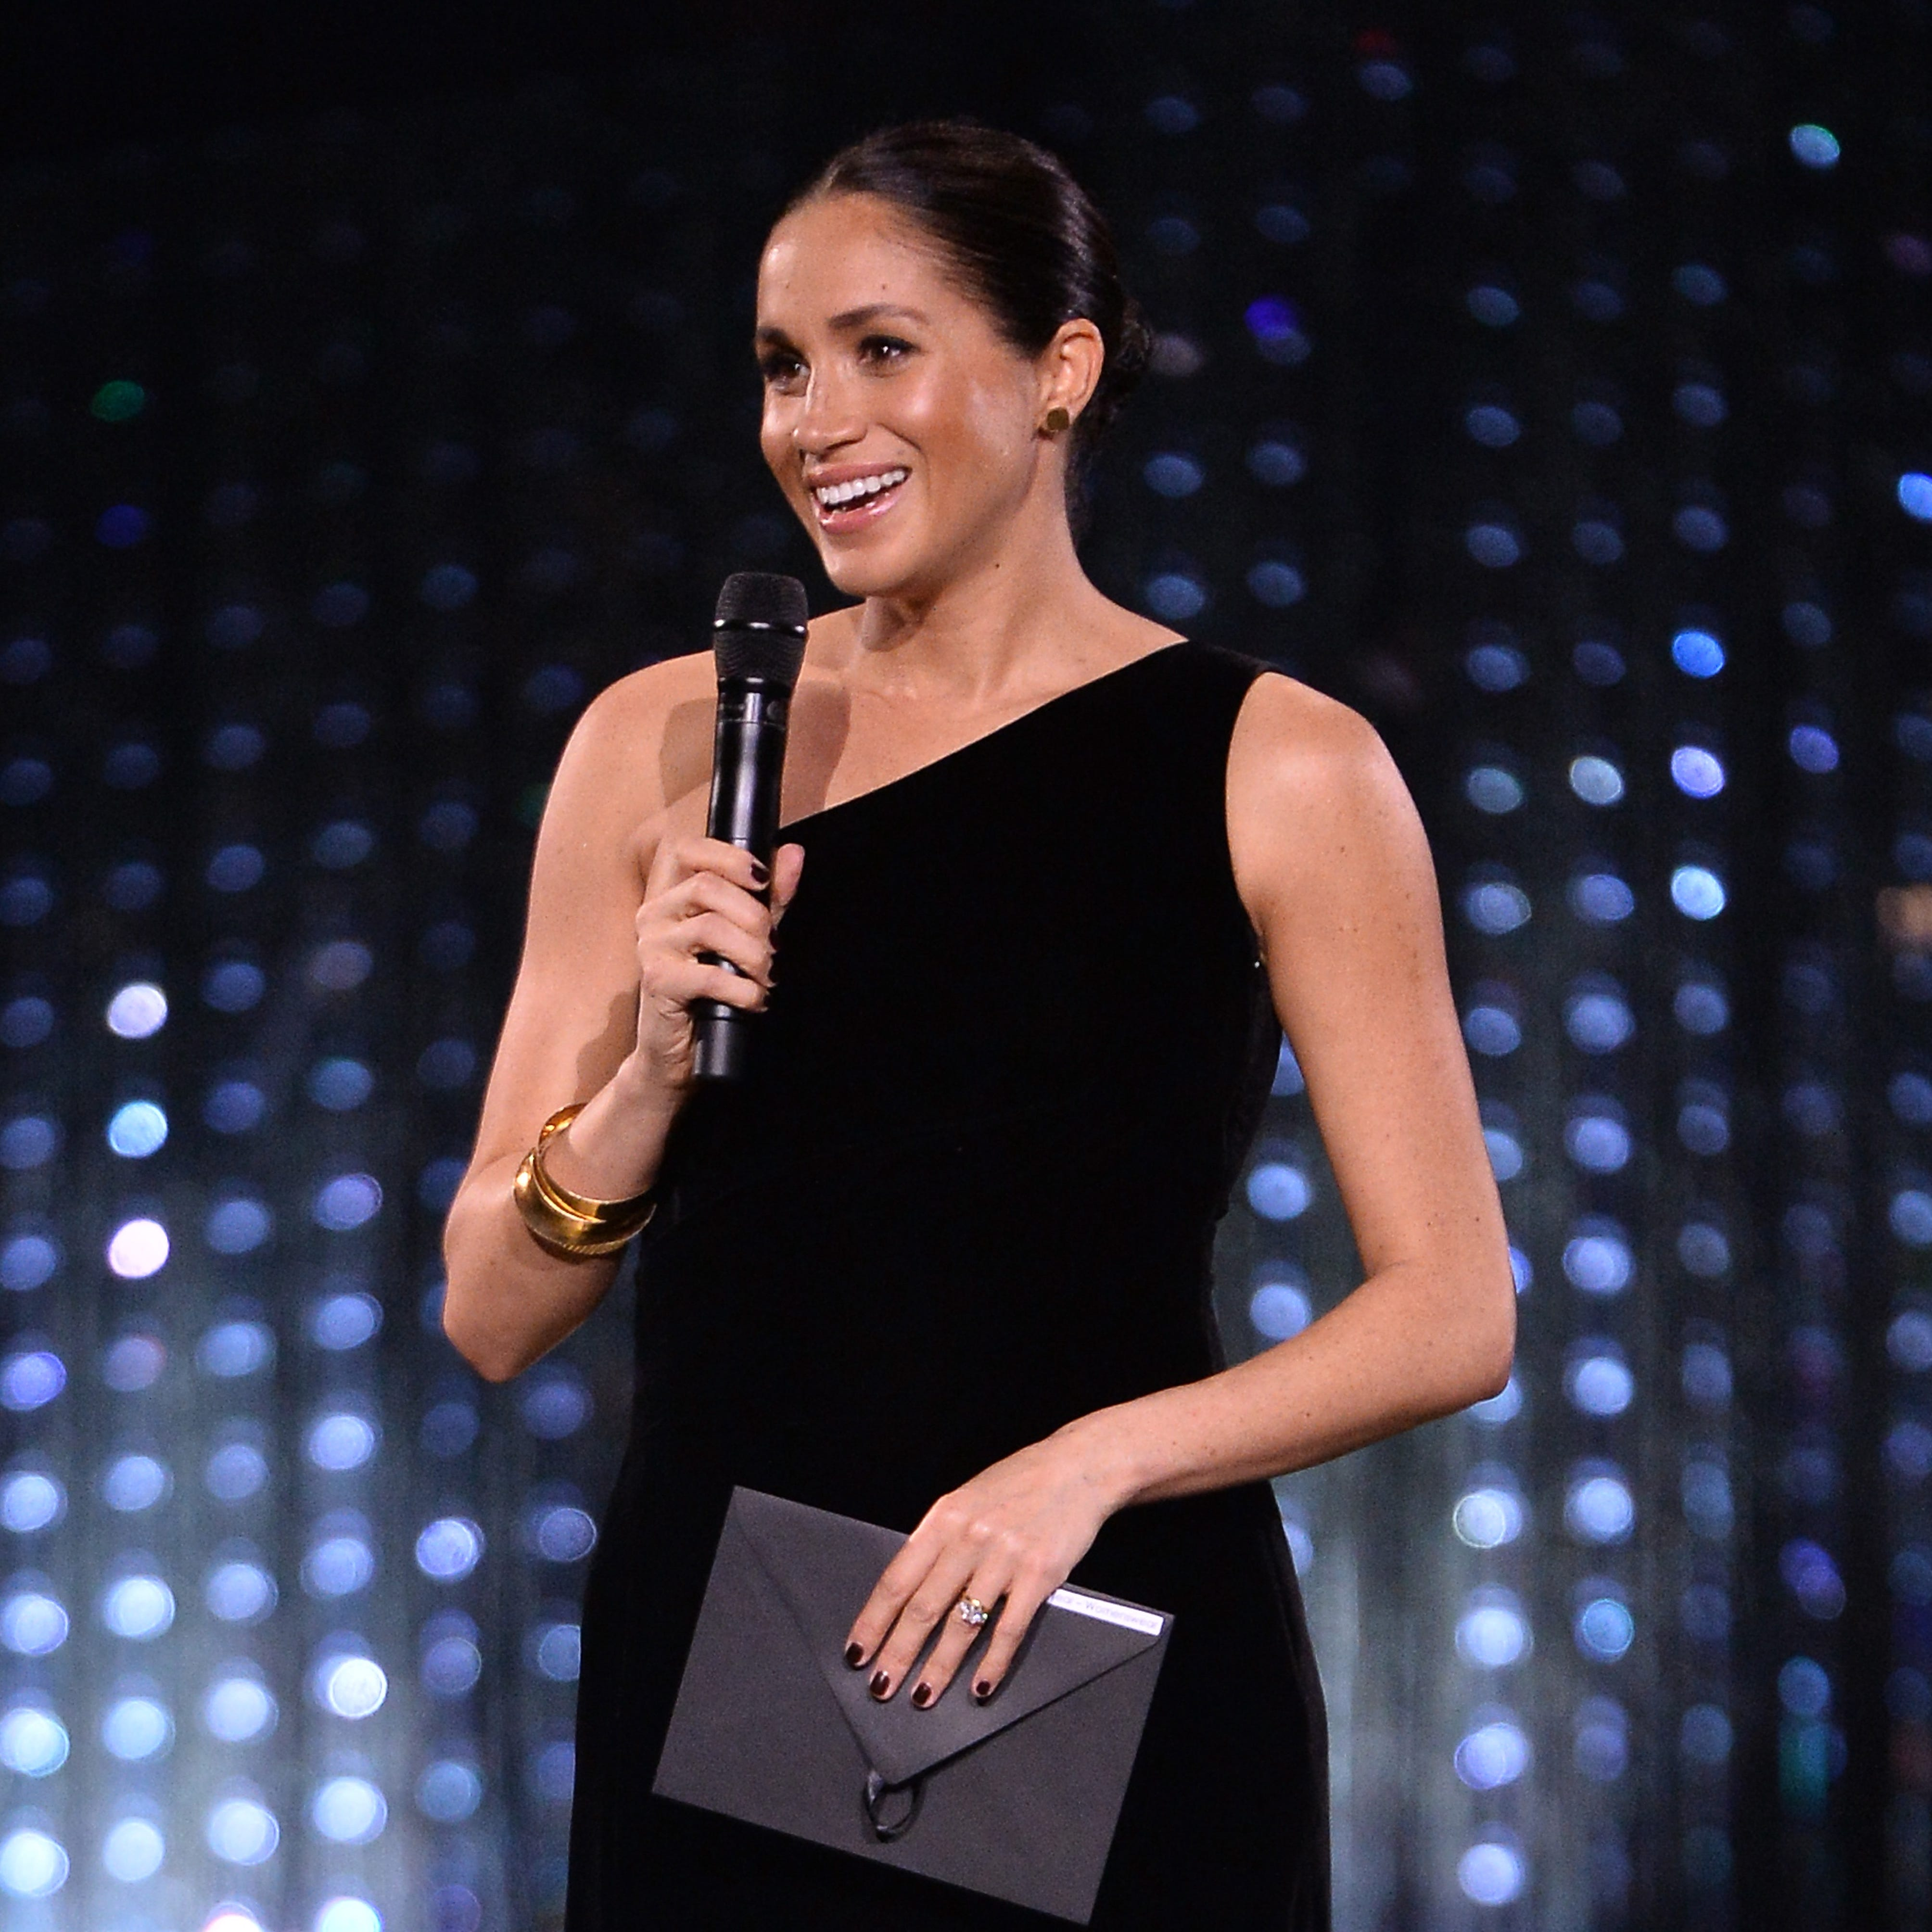 One time use